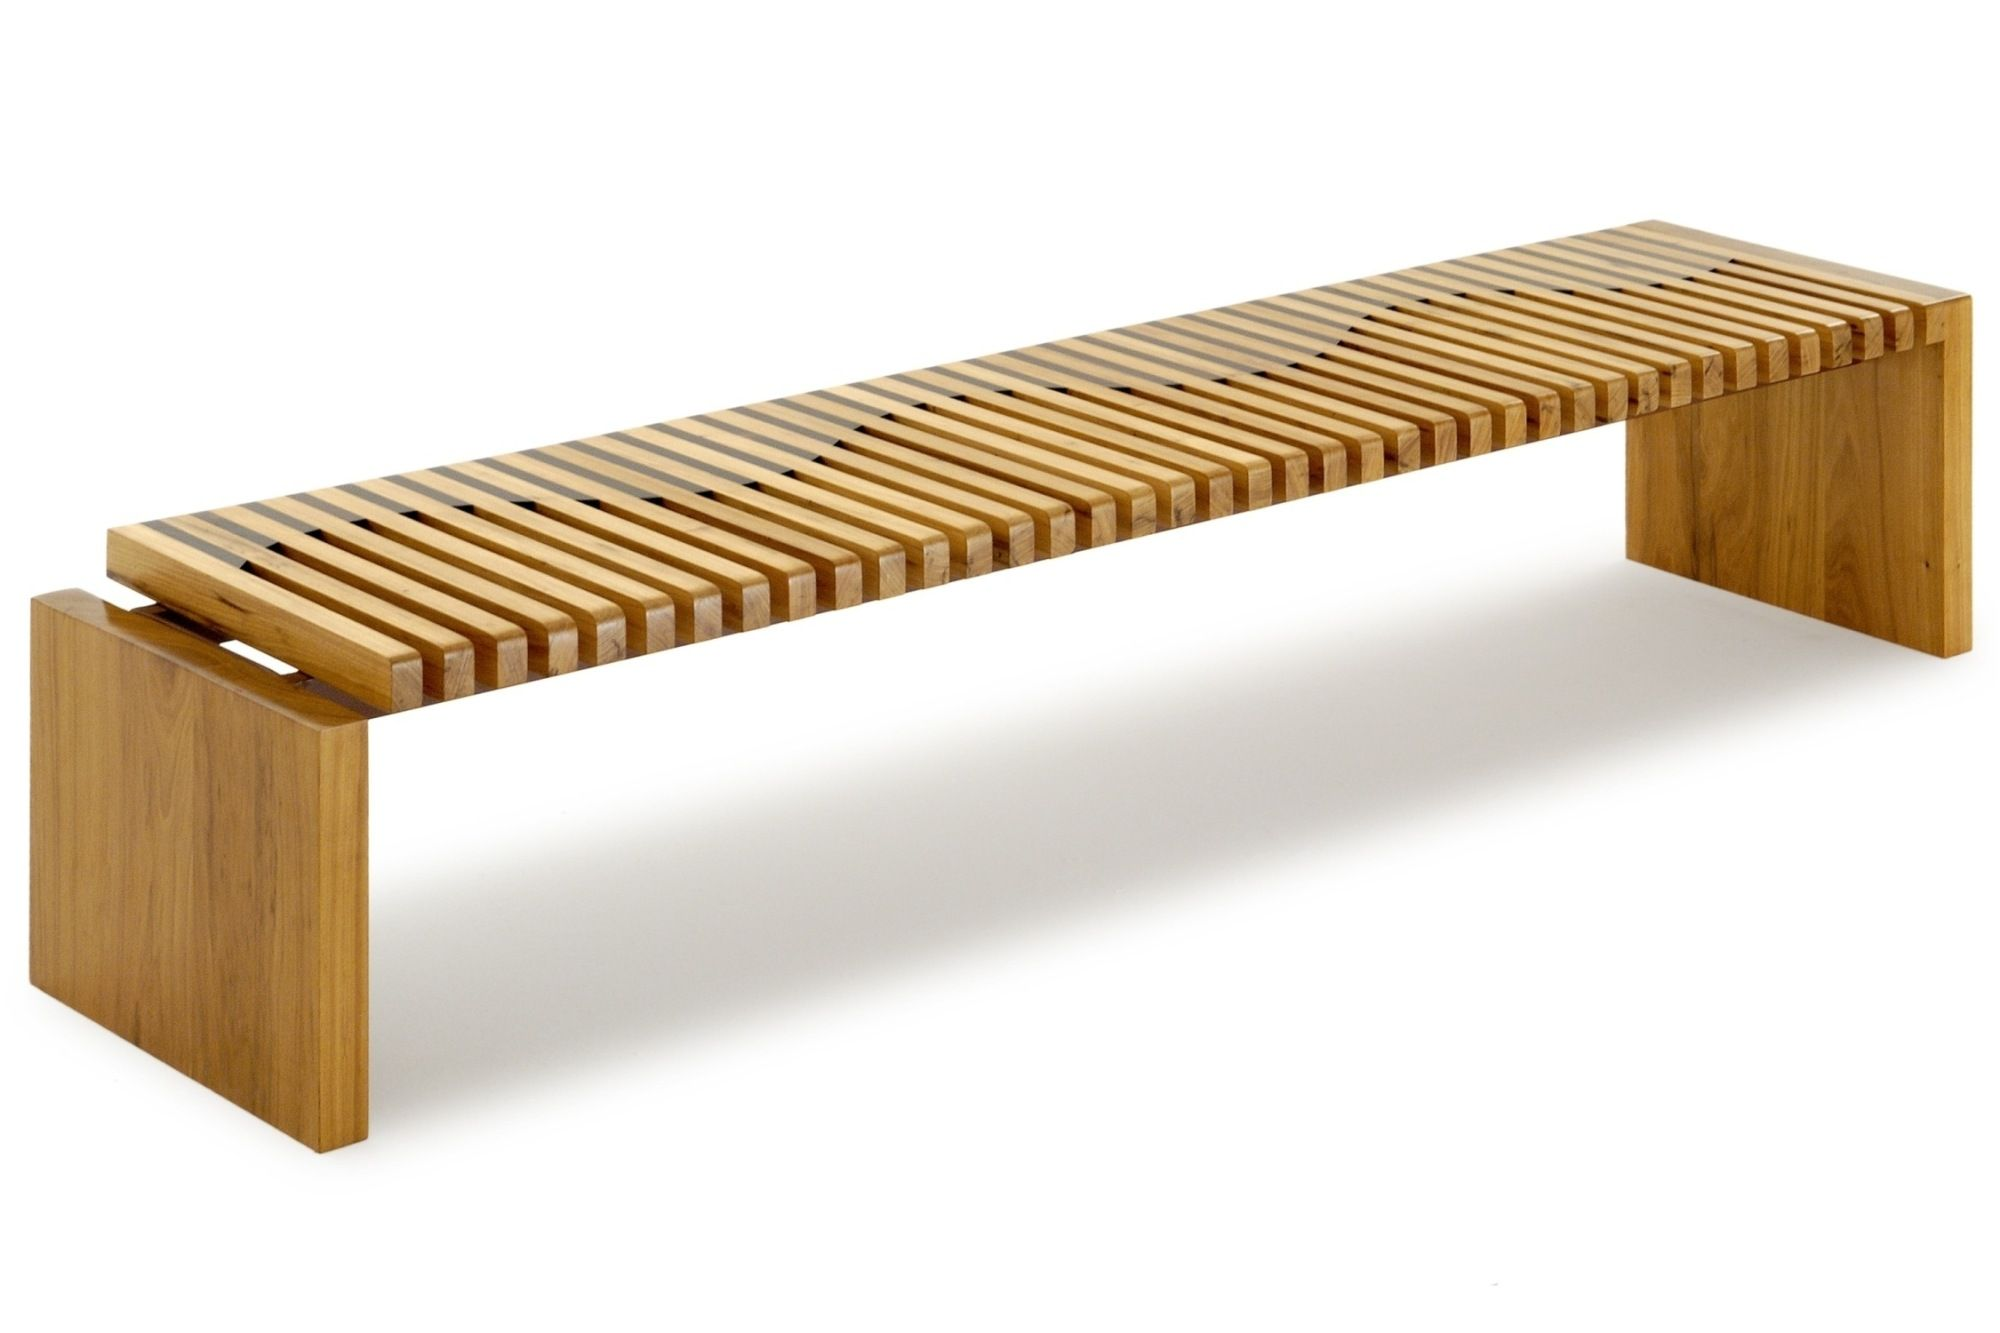 Onda Bench Contemporary Bench Indoor Bench Designs Indoor Bench